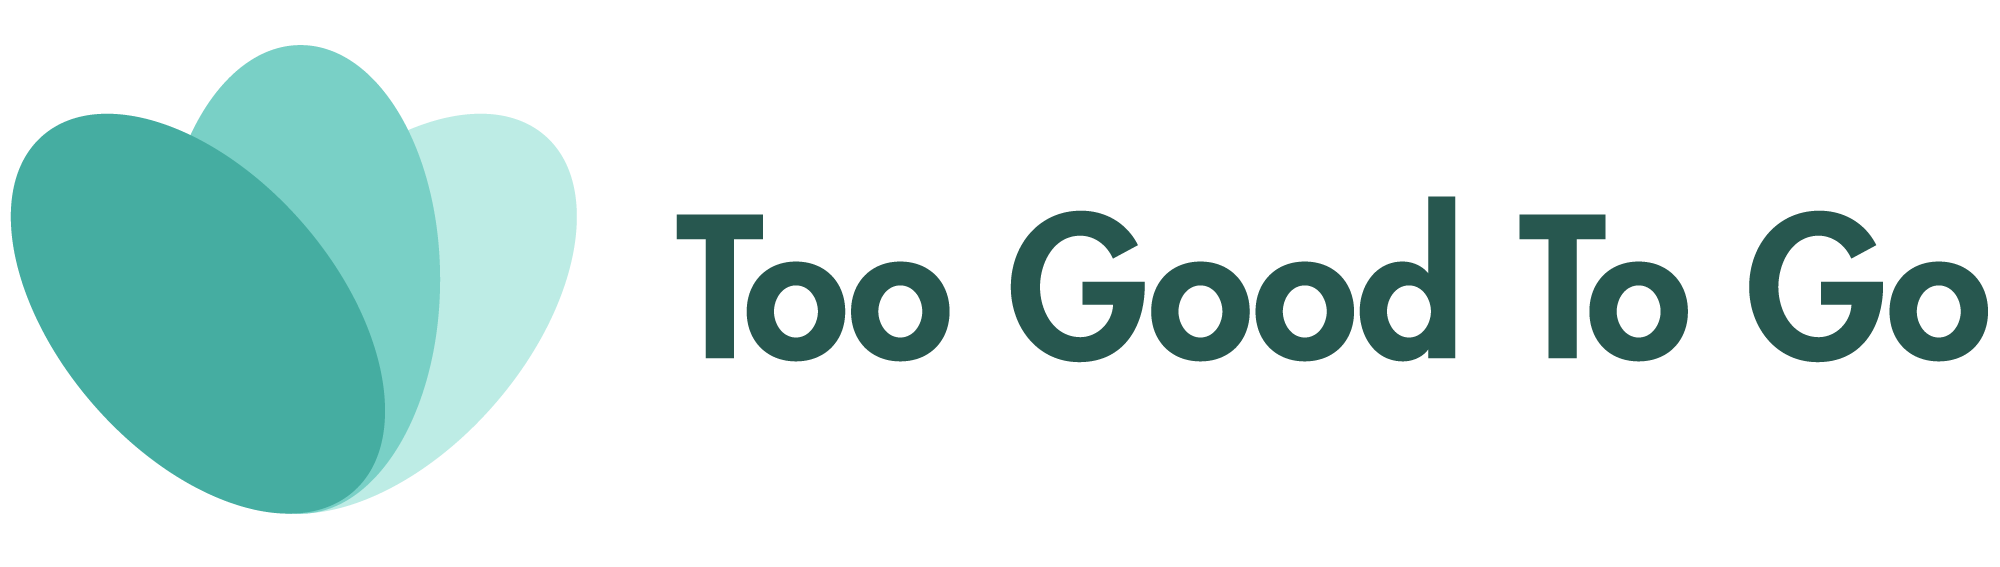 Too good to go